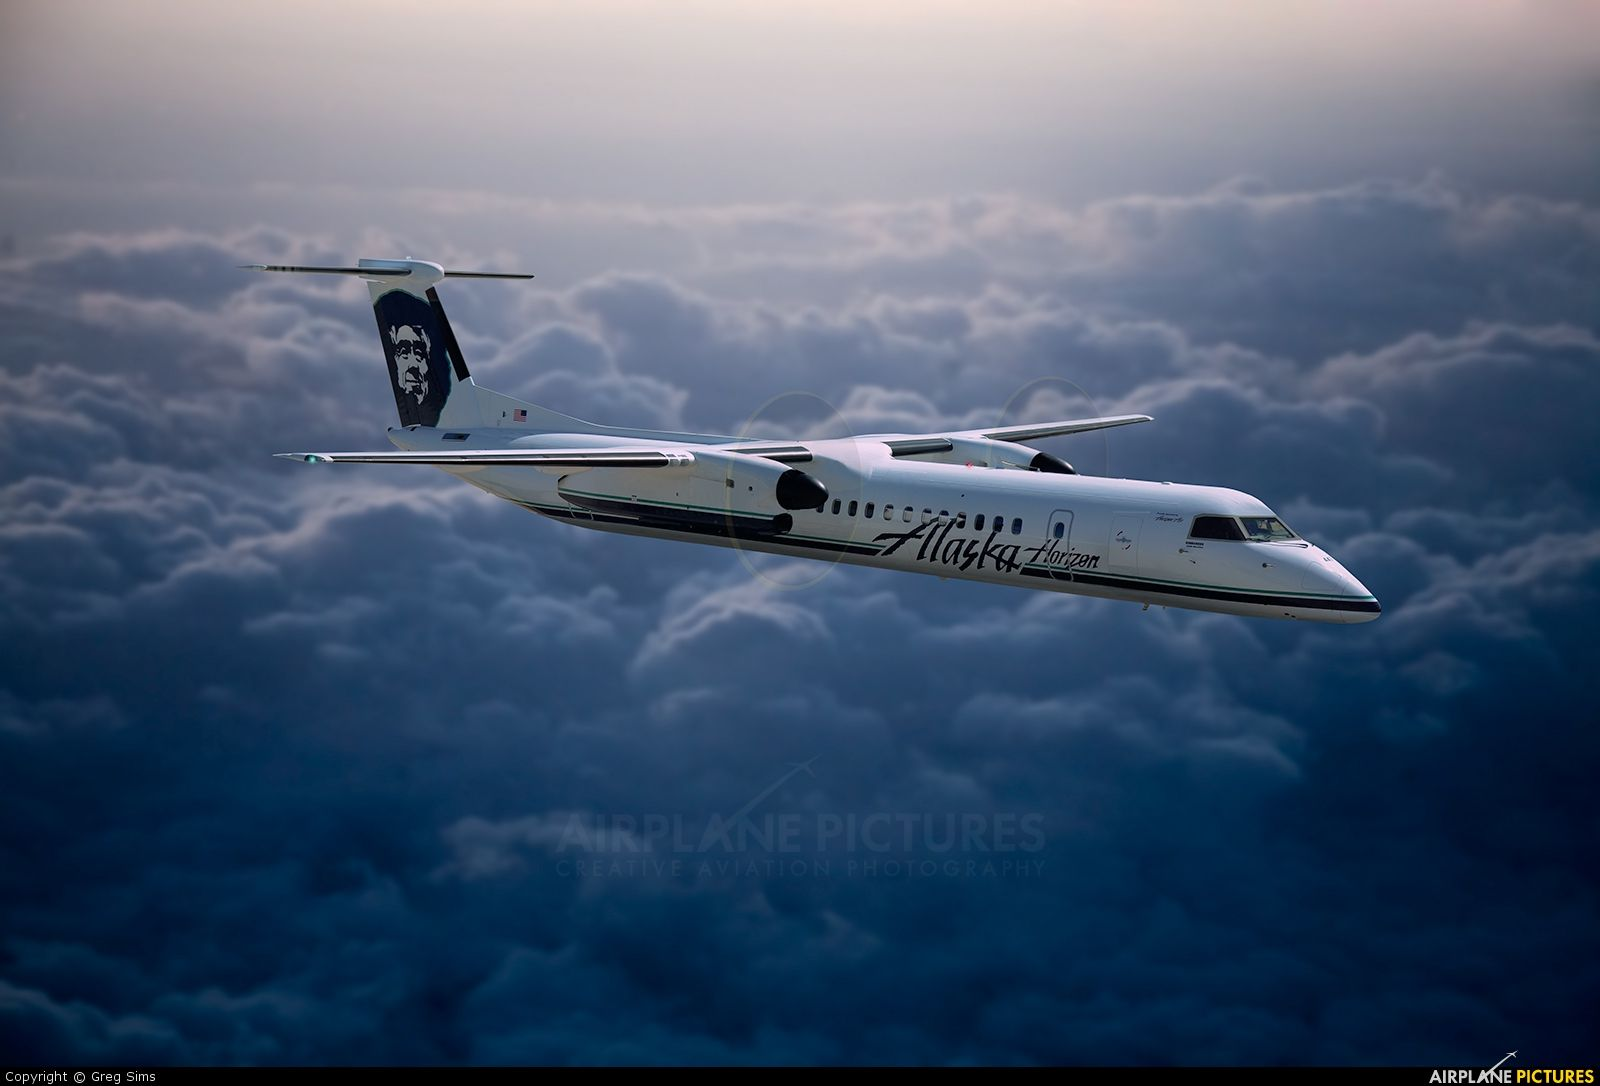 High Quality Photo Of Alaska Airlines